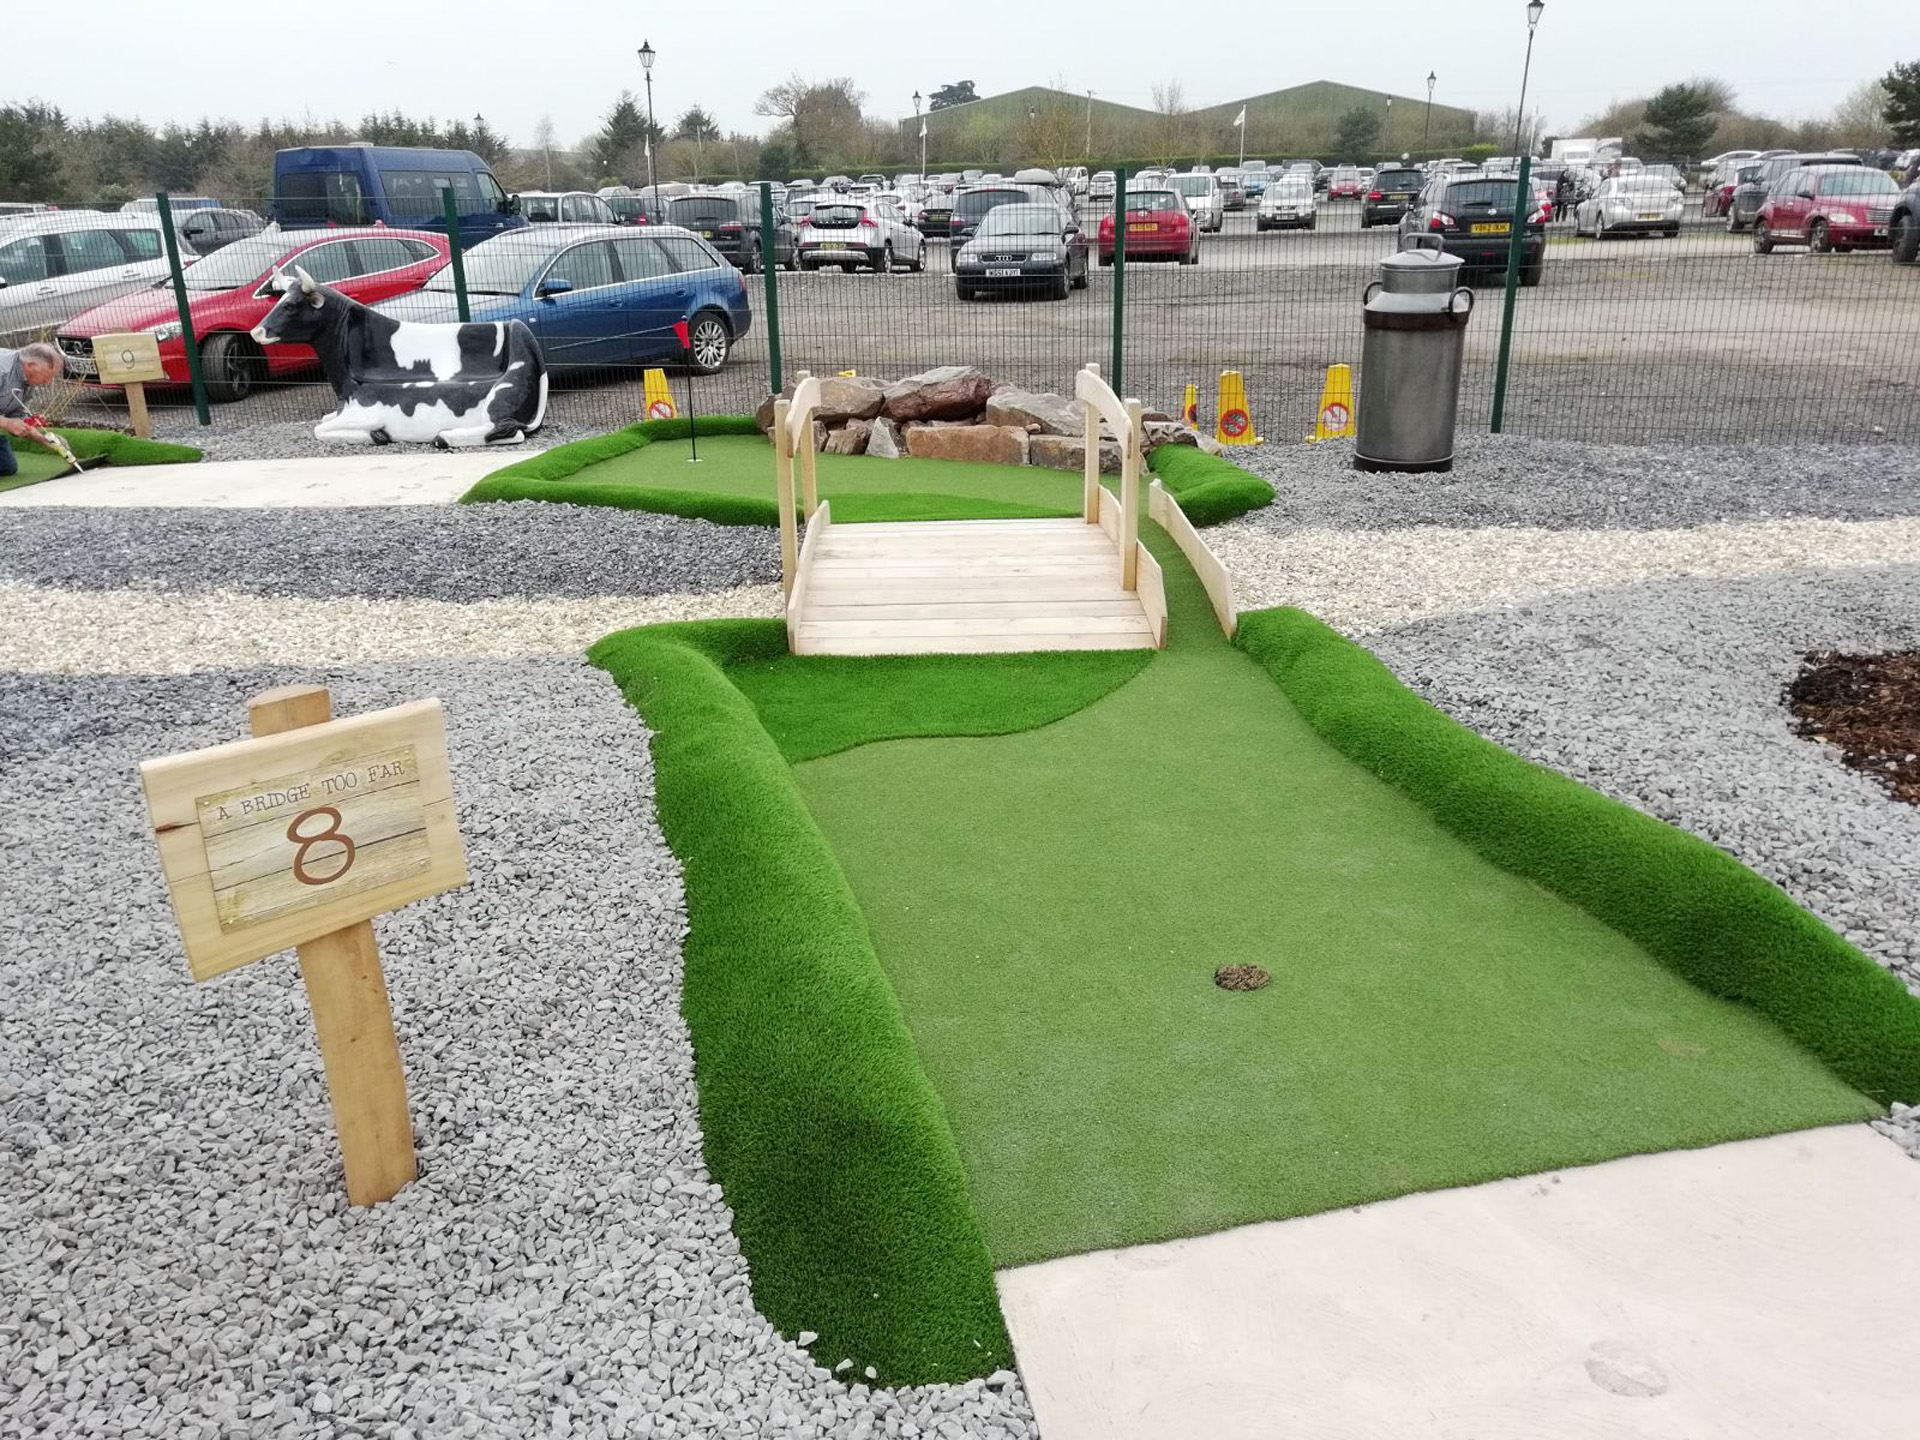 PPG - Perfectly Green Adventure Golf Grass